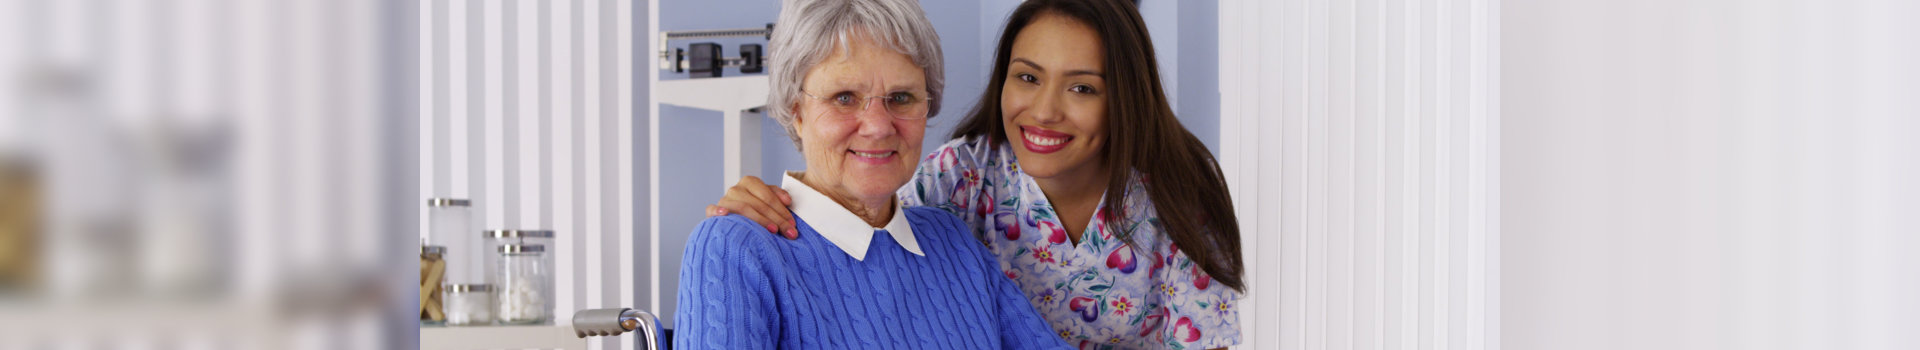 caregiver and her patient